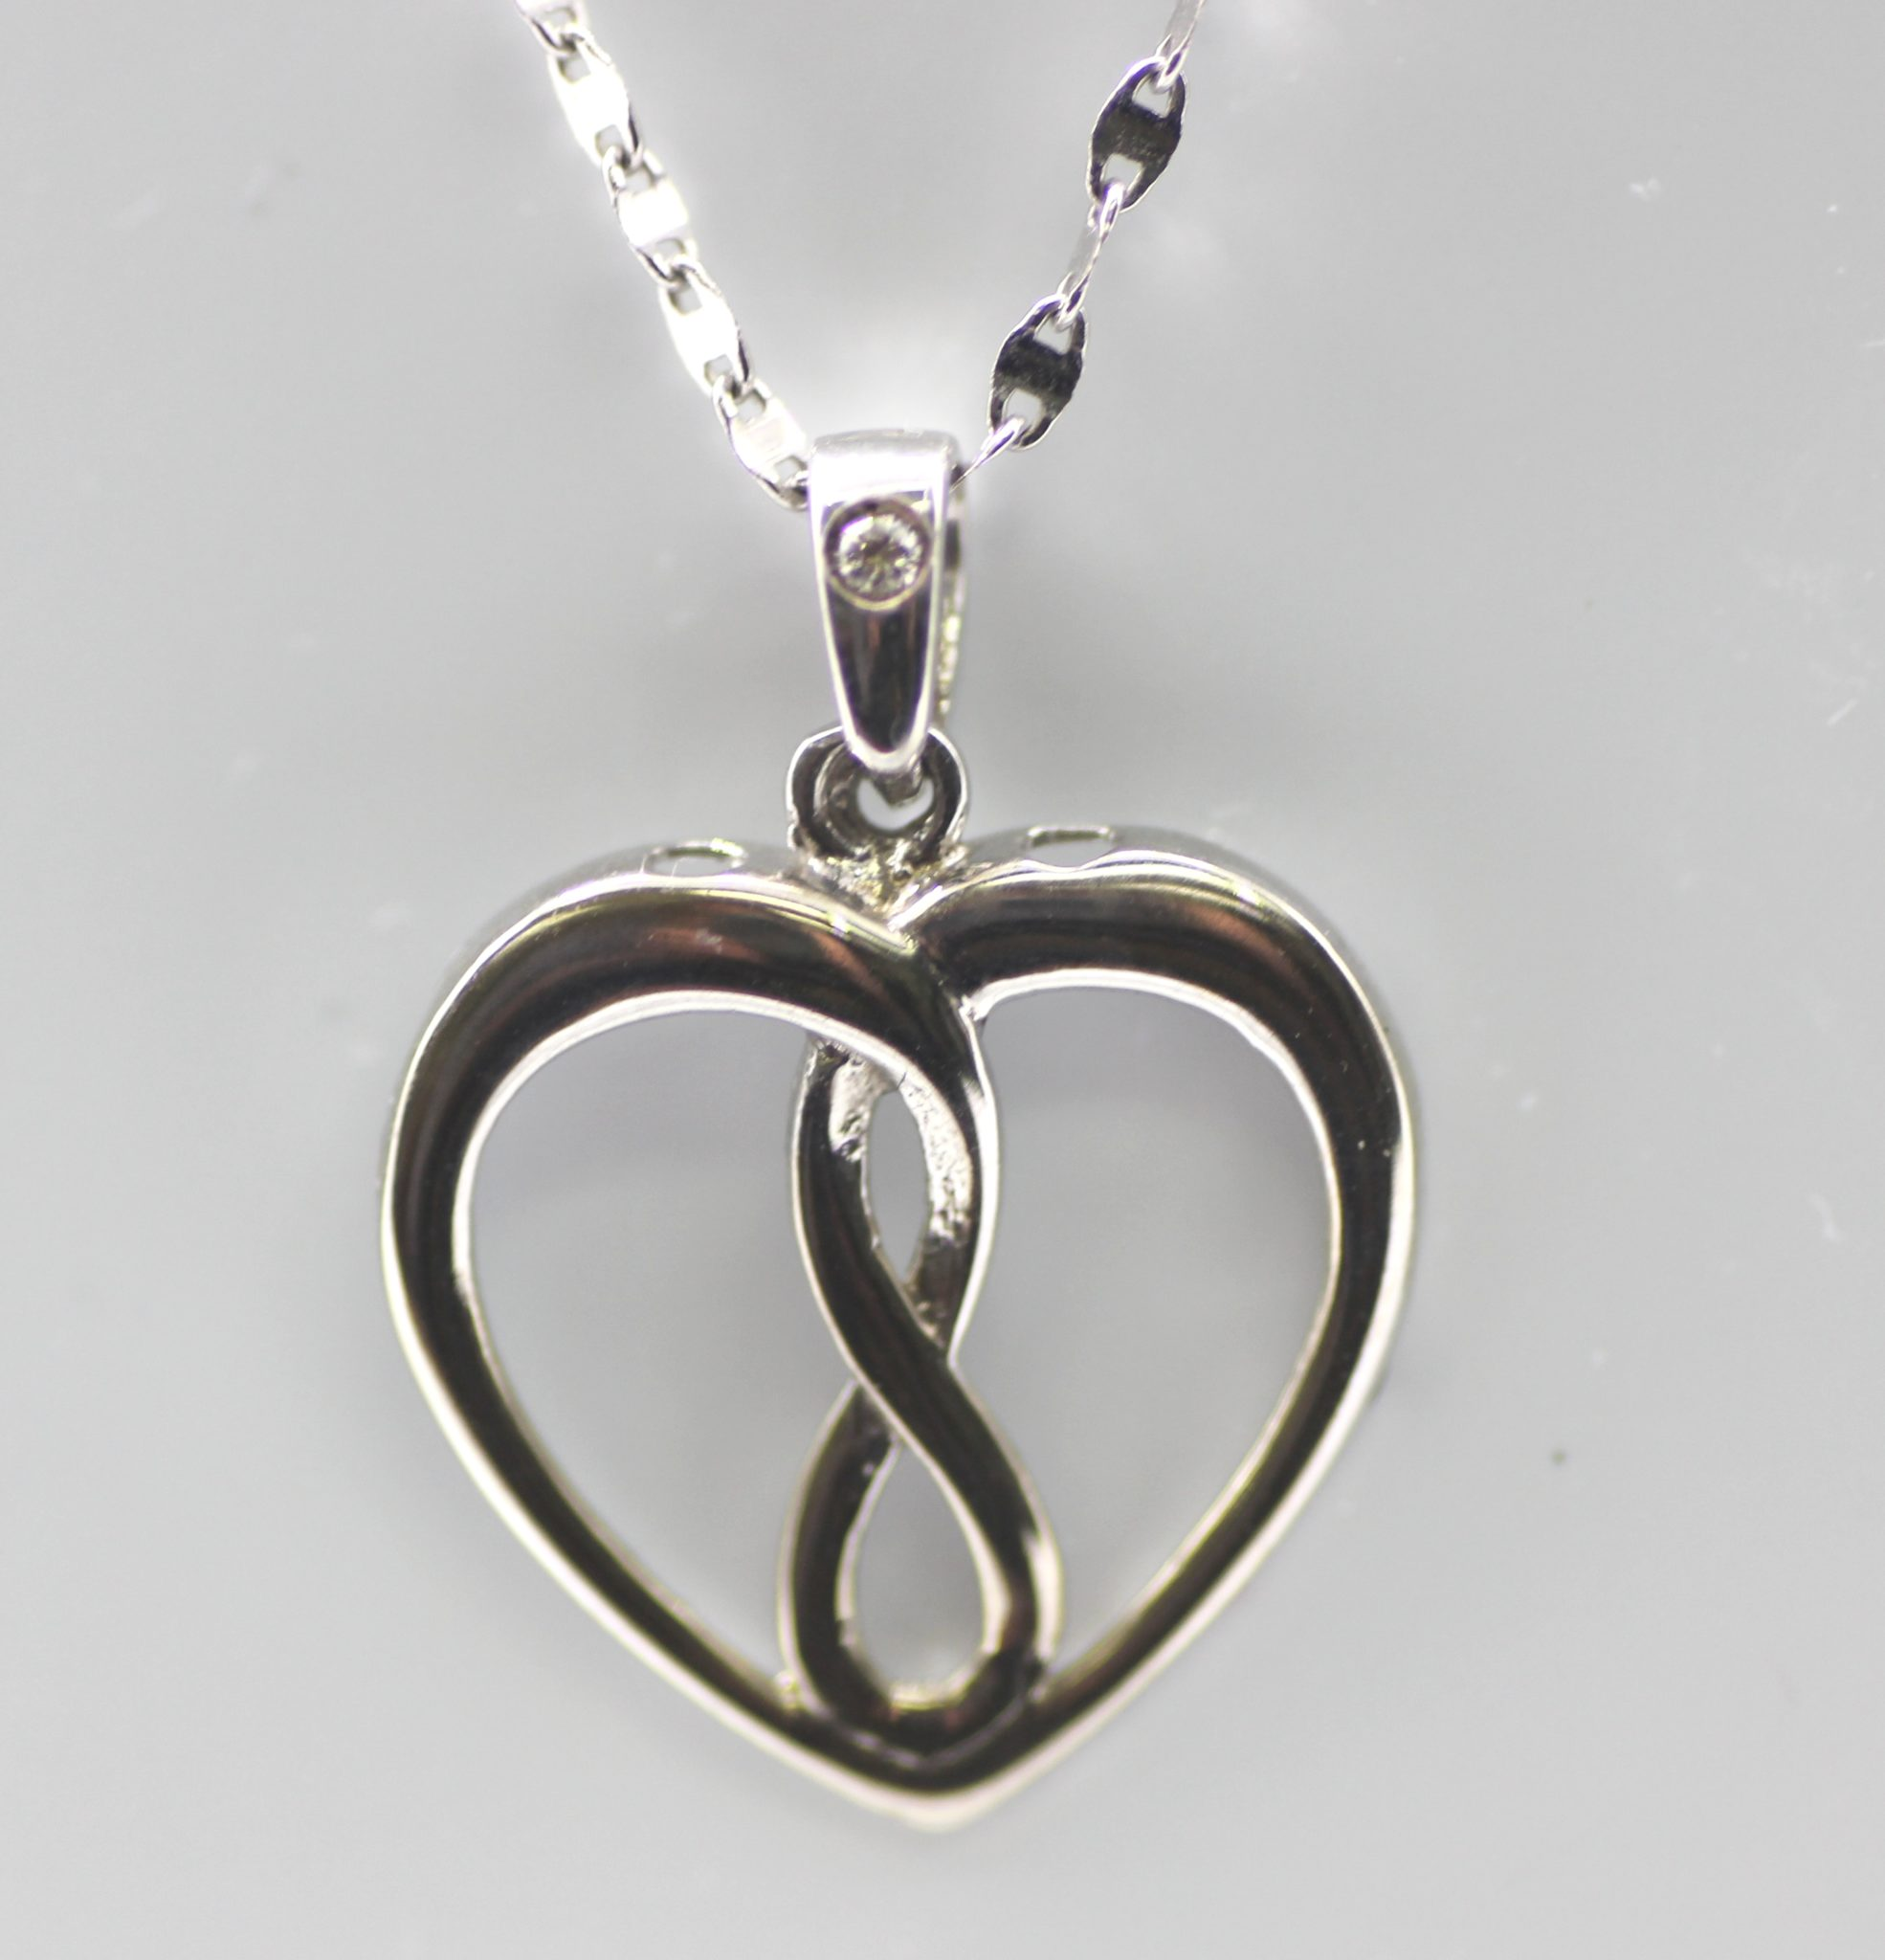 Infinity heart pendant 10k white gold and diamond